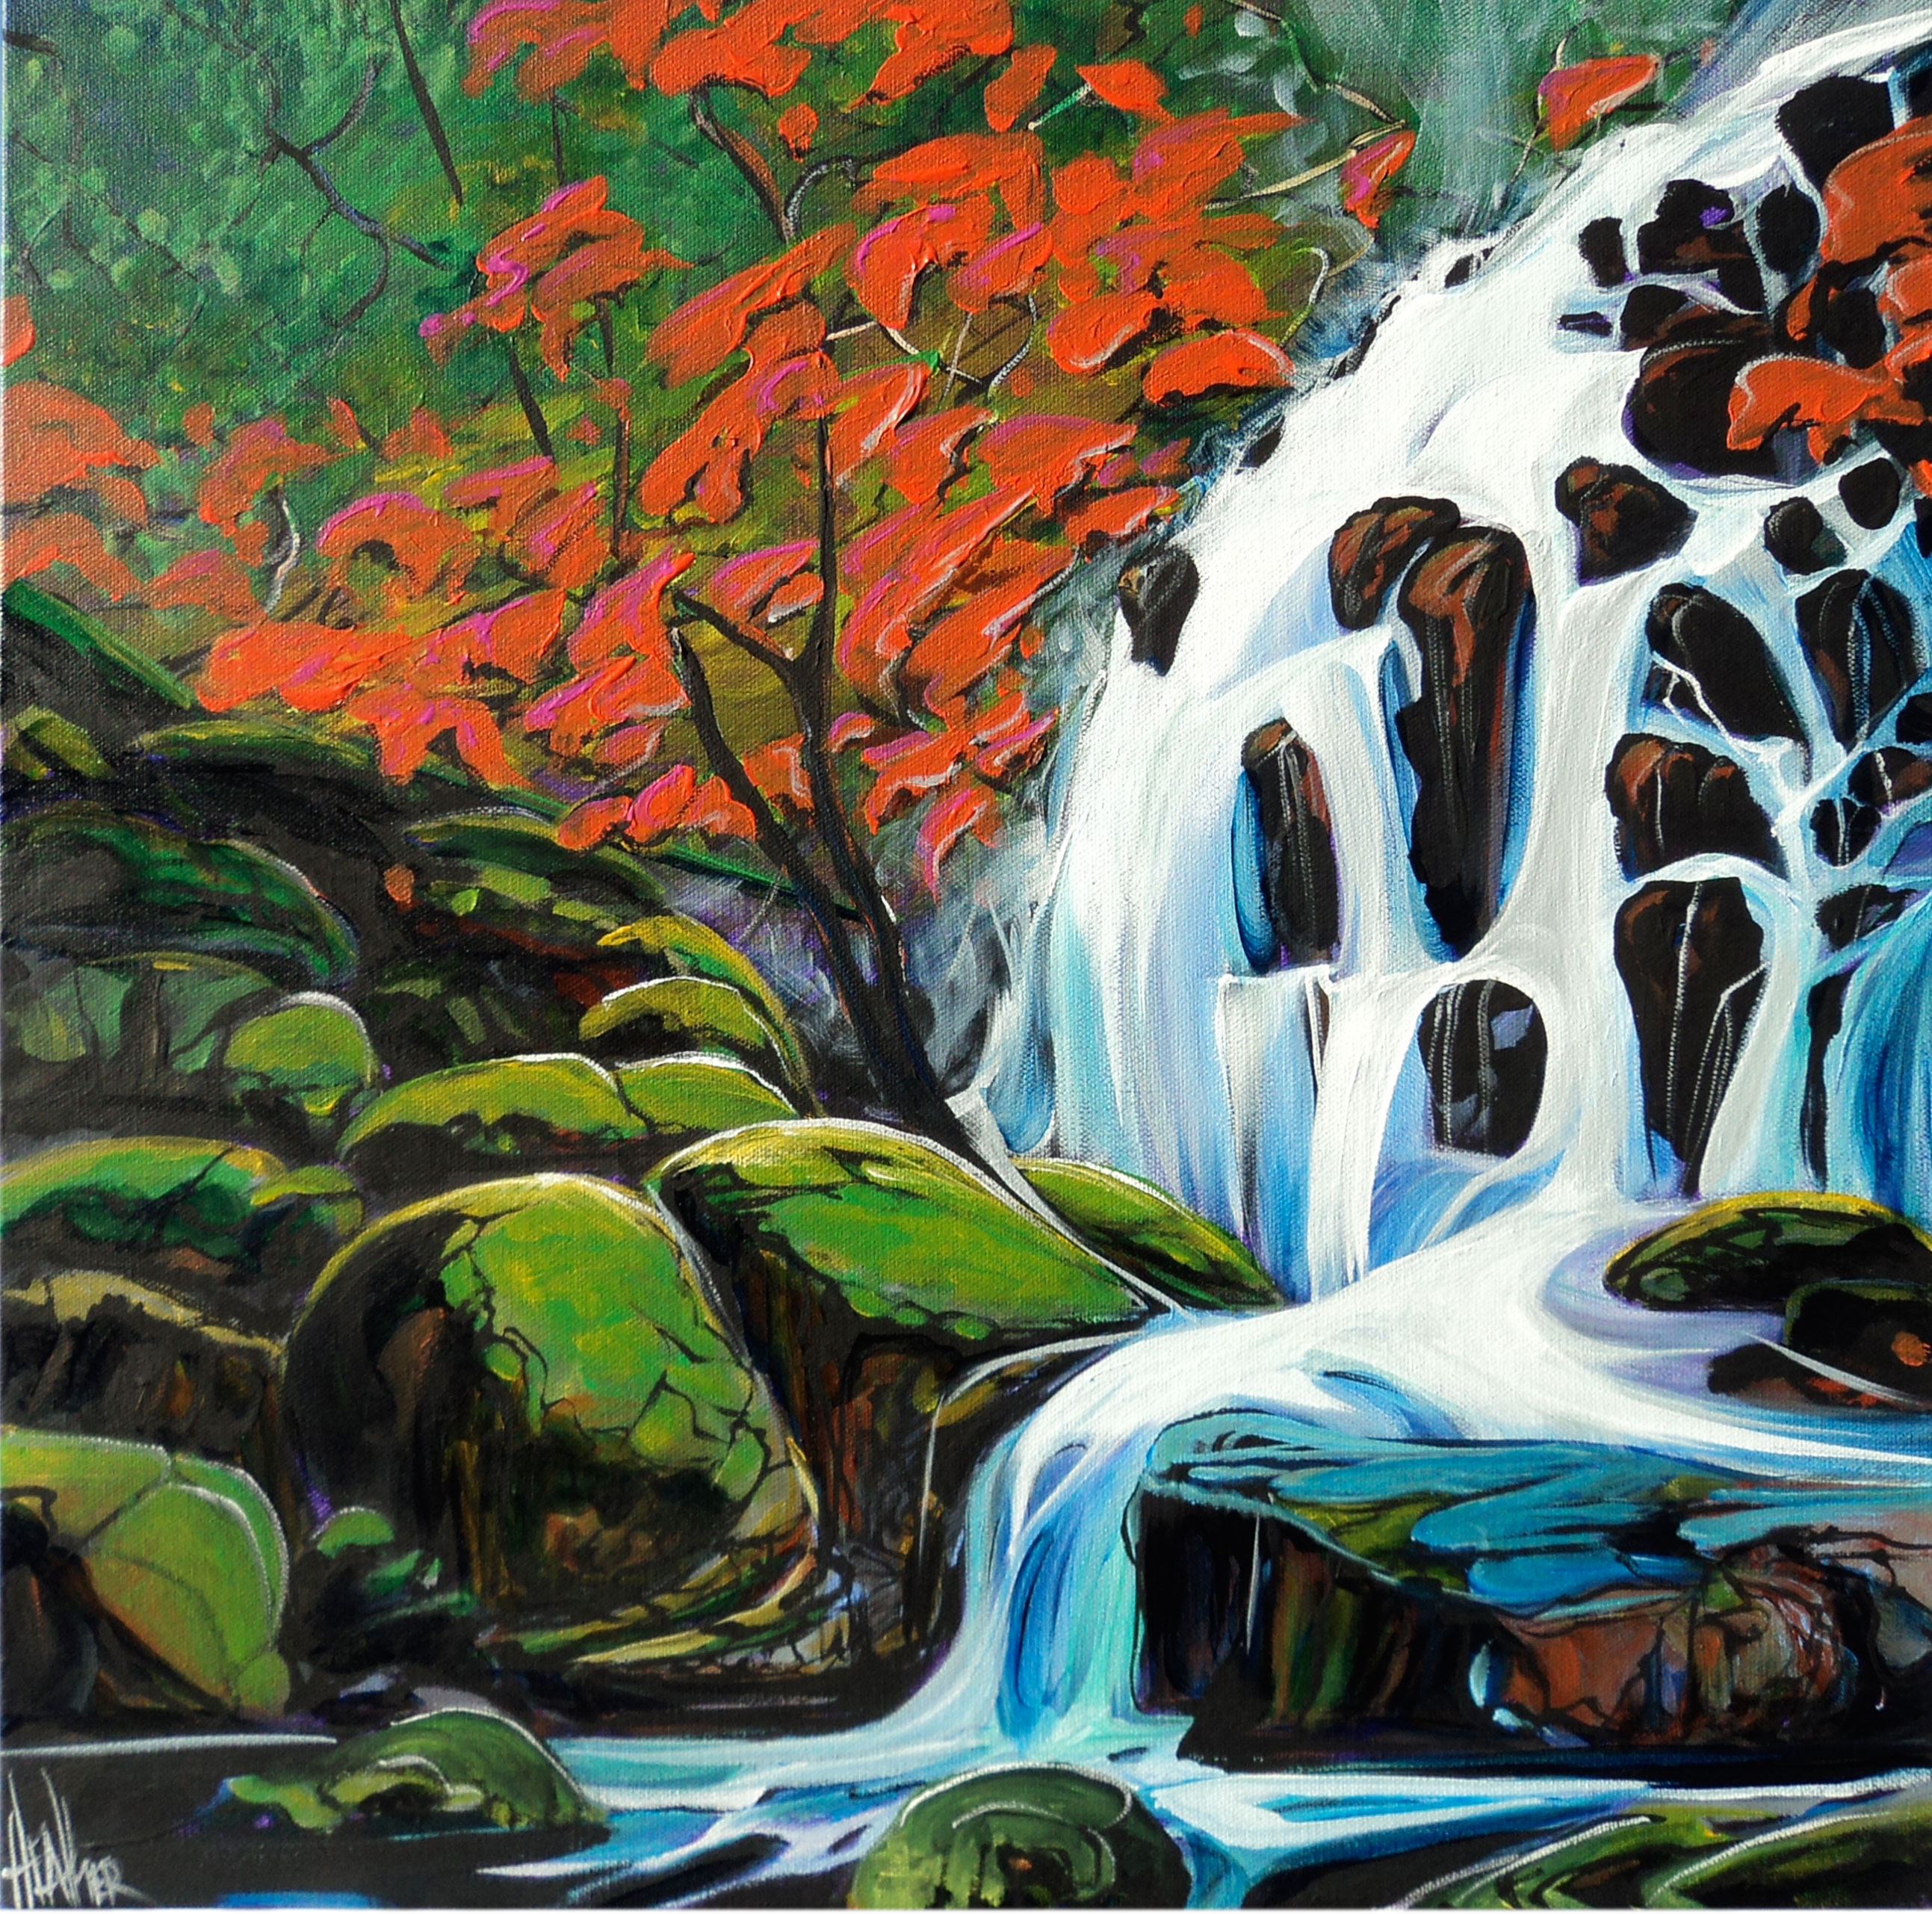 MidSummer Falls 20 x 20 ...SOLD